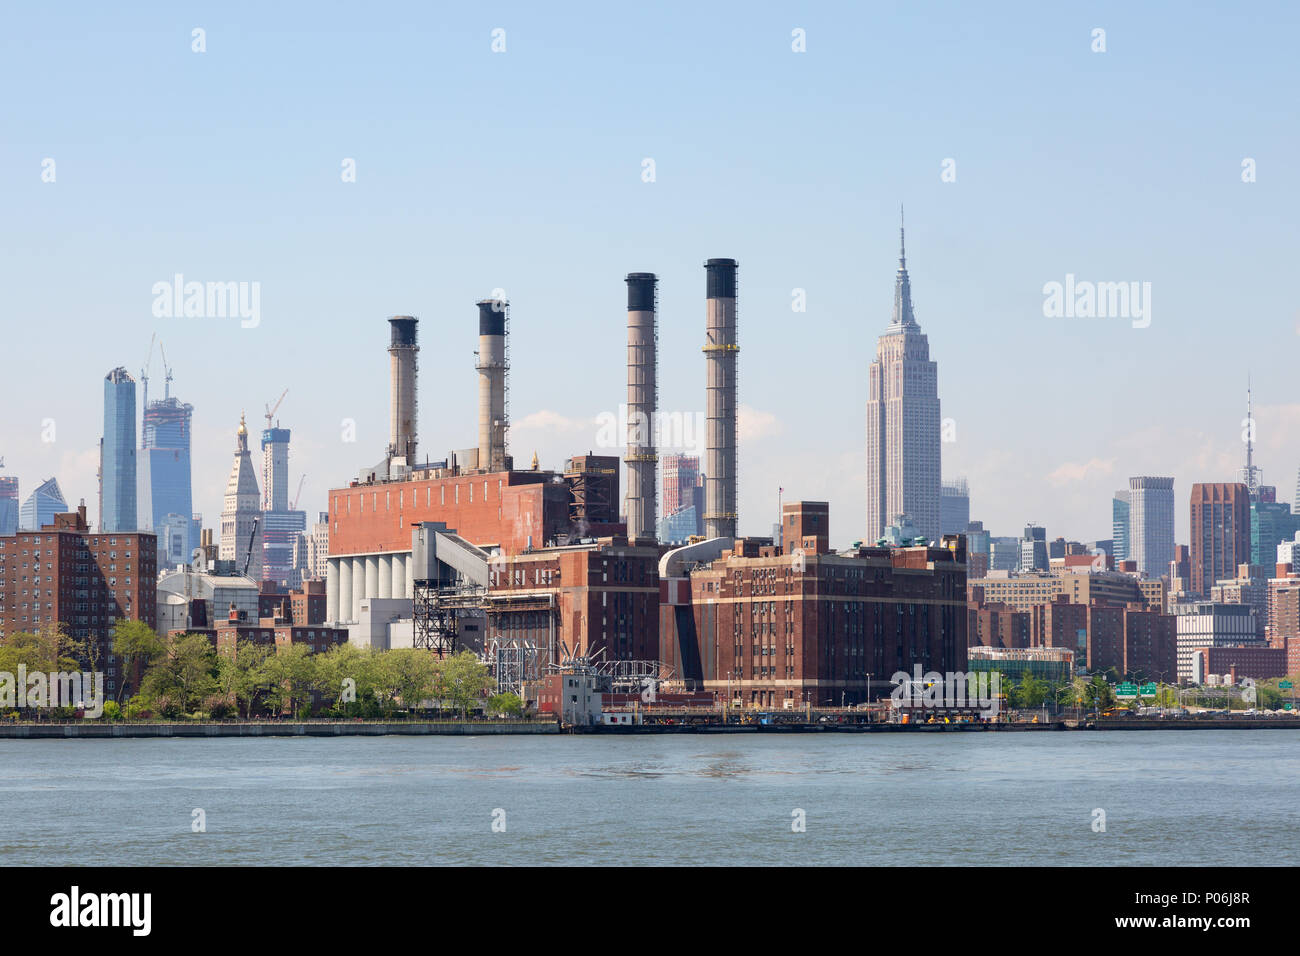 The Consolidated Edison Inc. plant on the East River, New York city United States of America - Stock Image